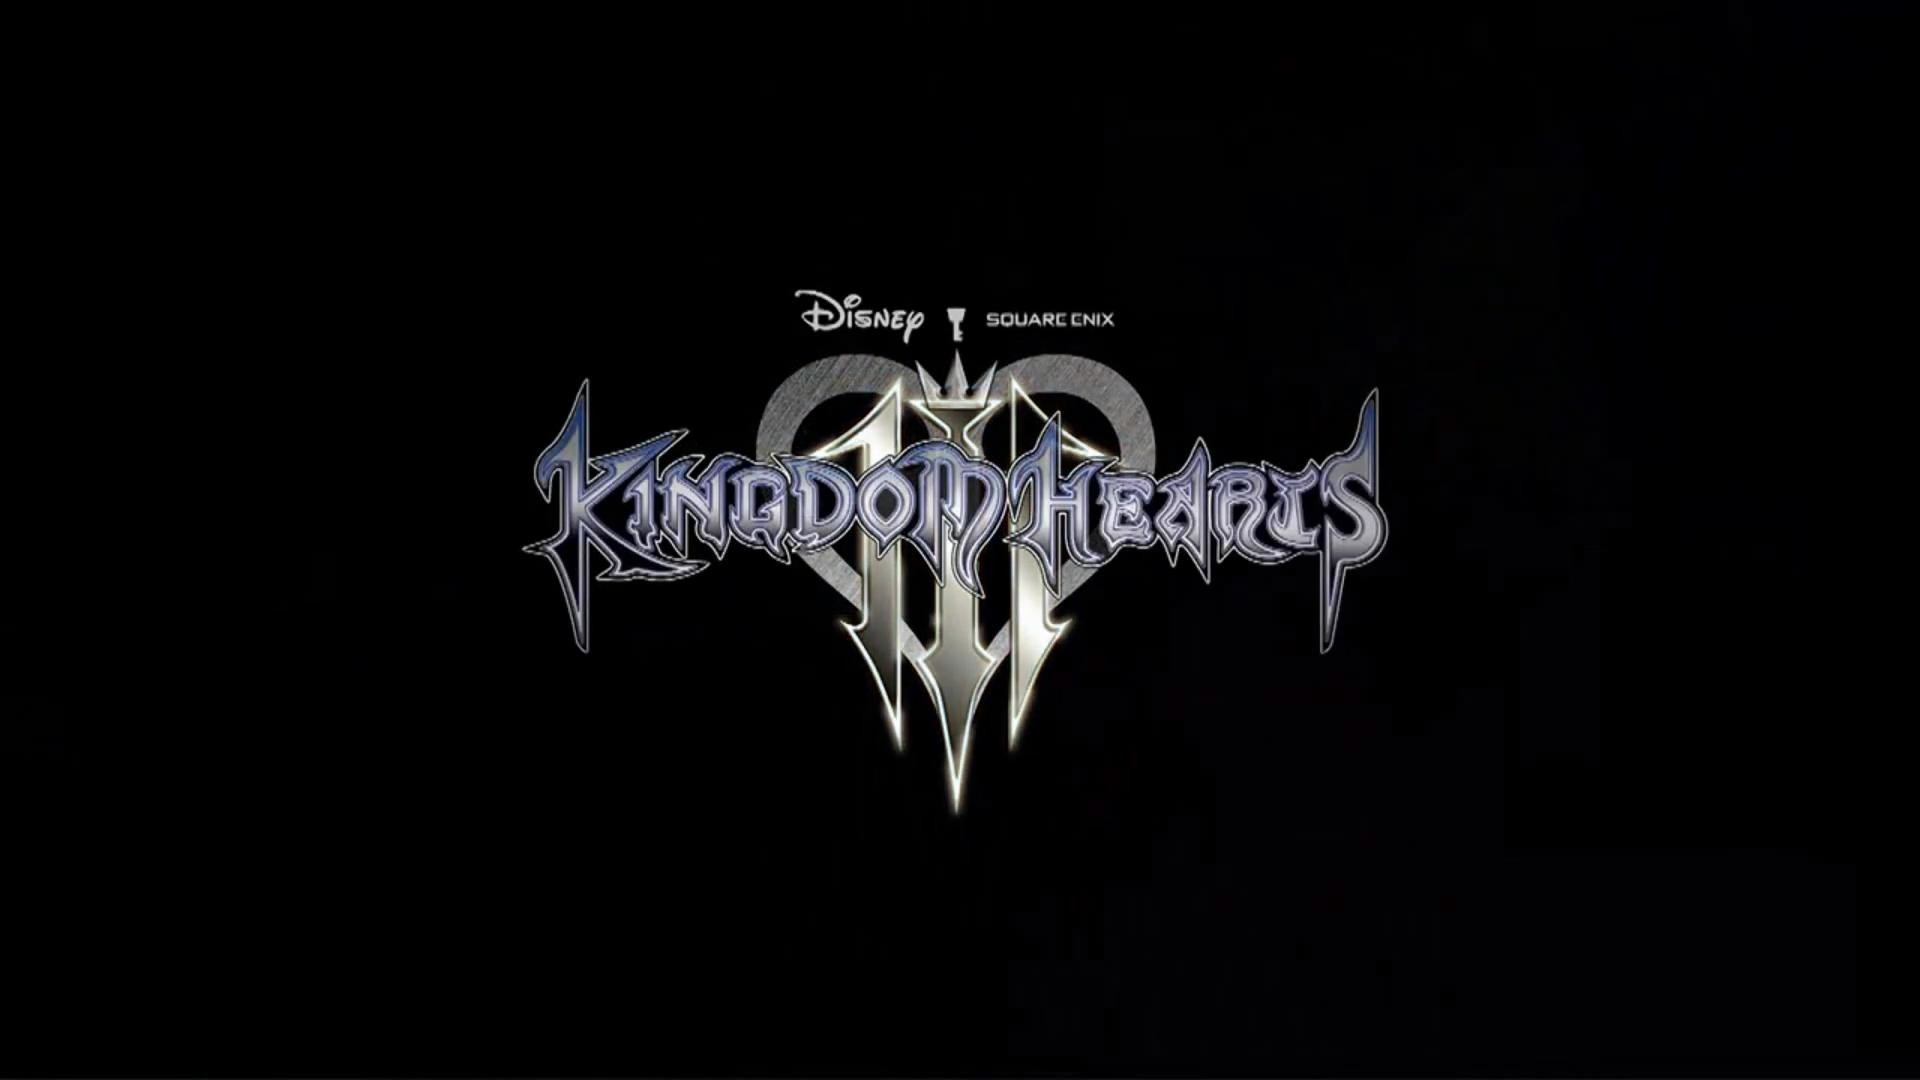 Kingdom Hearts 3 Wallpaper 77 Images